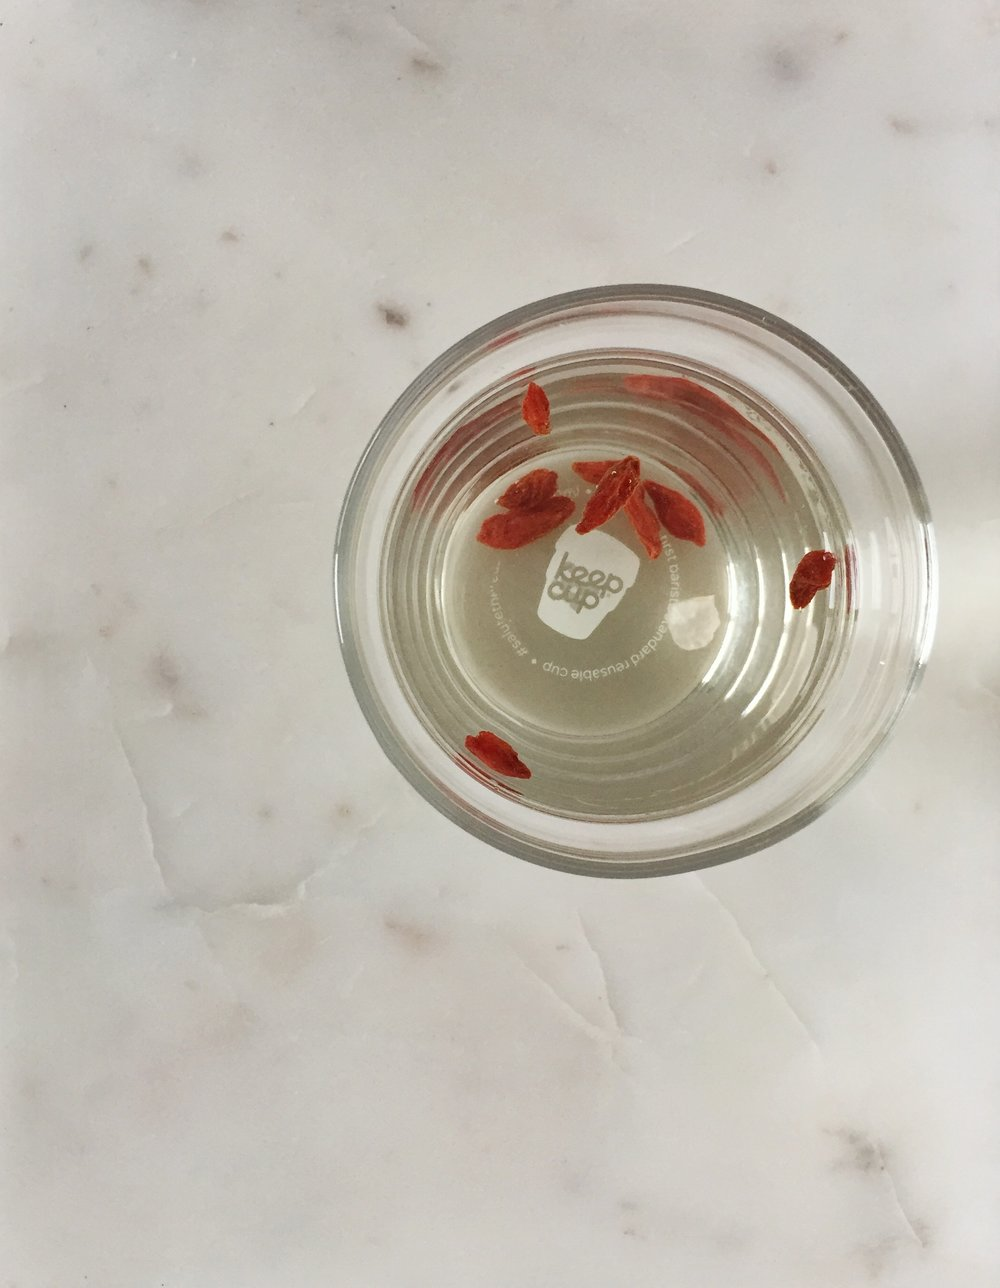 goji water - Add goji berries to your water for a daily dose of beta-carotene for radiant skin, daily dose of vitamin c for immune optimization, and antioxidants to help eradicate free radicals.